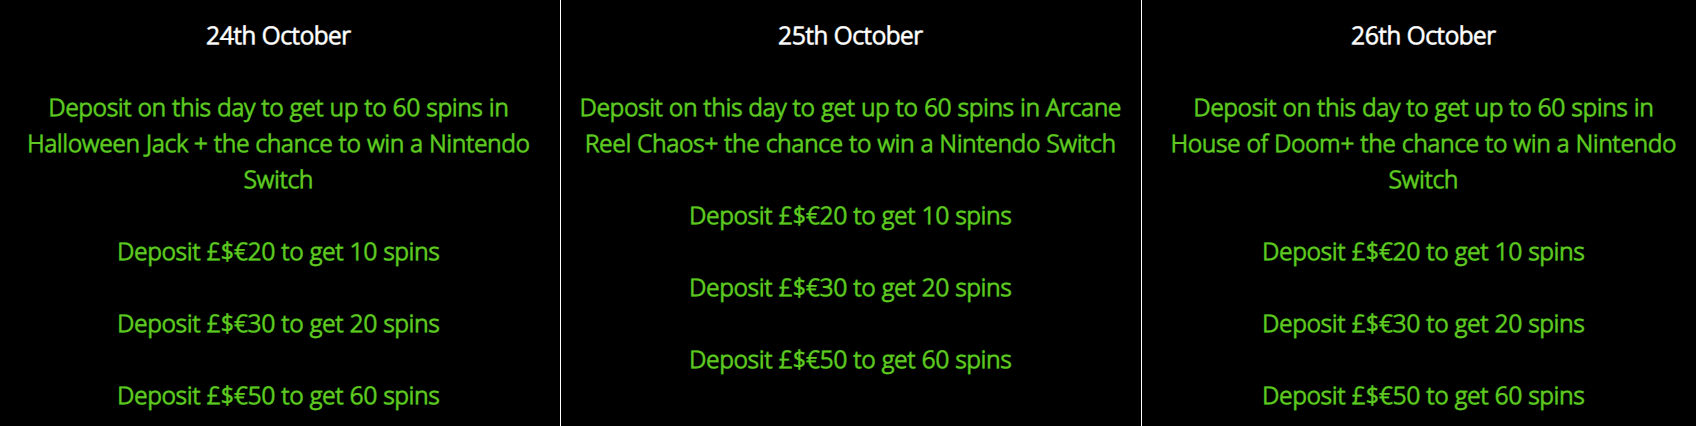 The Details of The Halloween Promotion